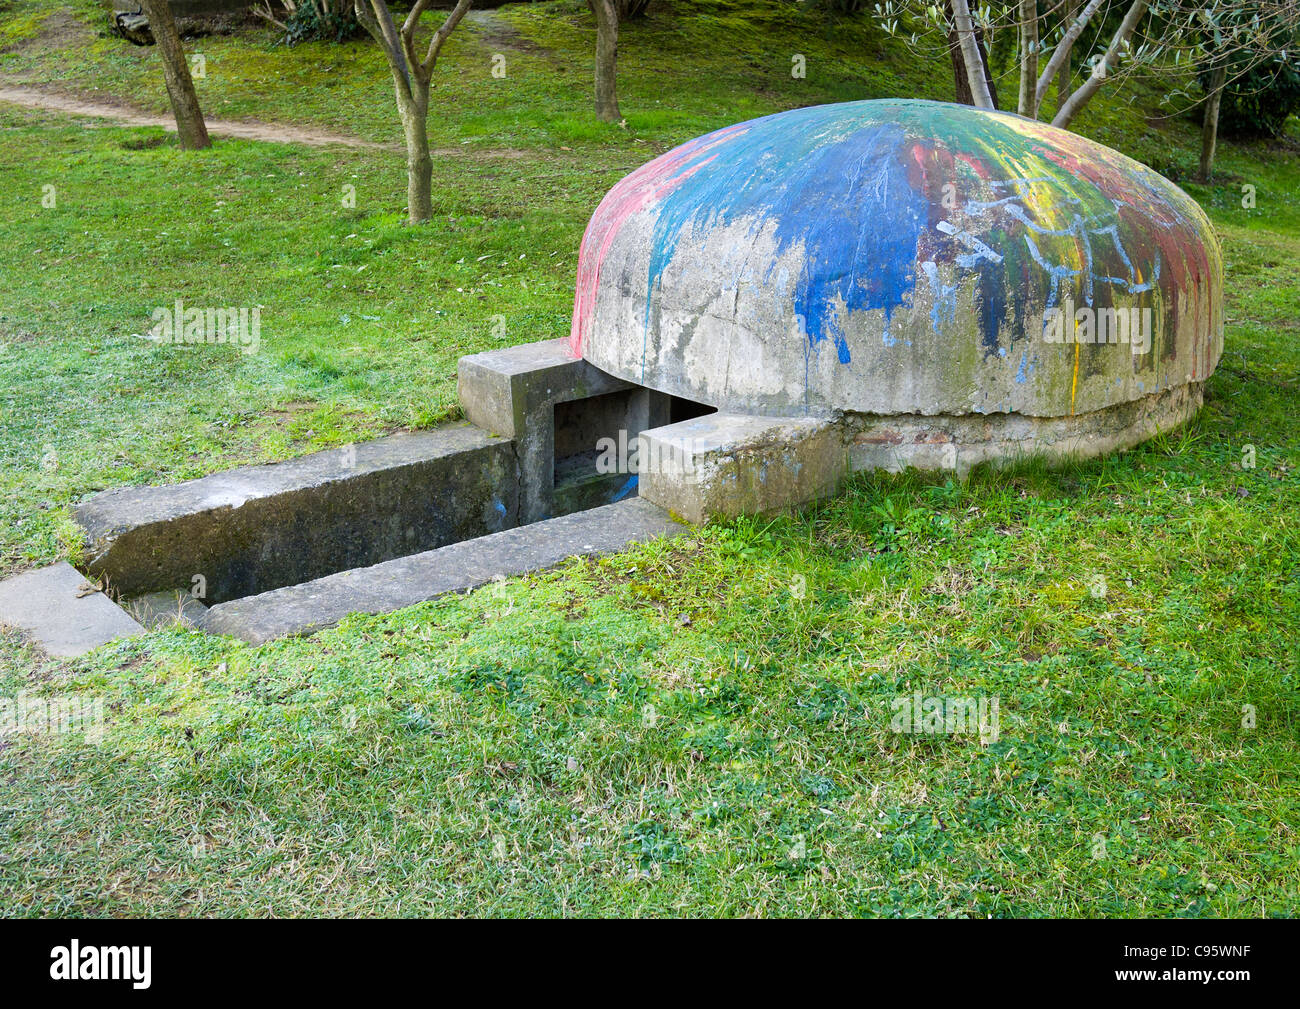 Defensive bunker or bomb shelter, Tirana, Albania.  Thousands of bunkers were built during the rule of Enver Hoxha. - Stock Image